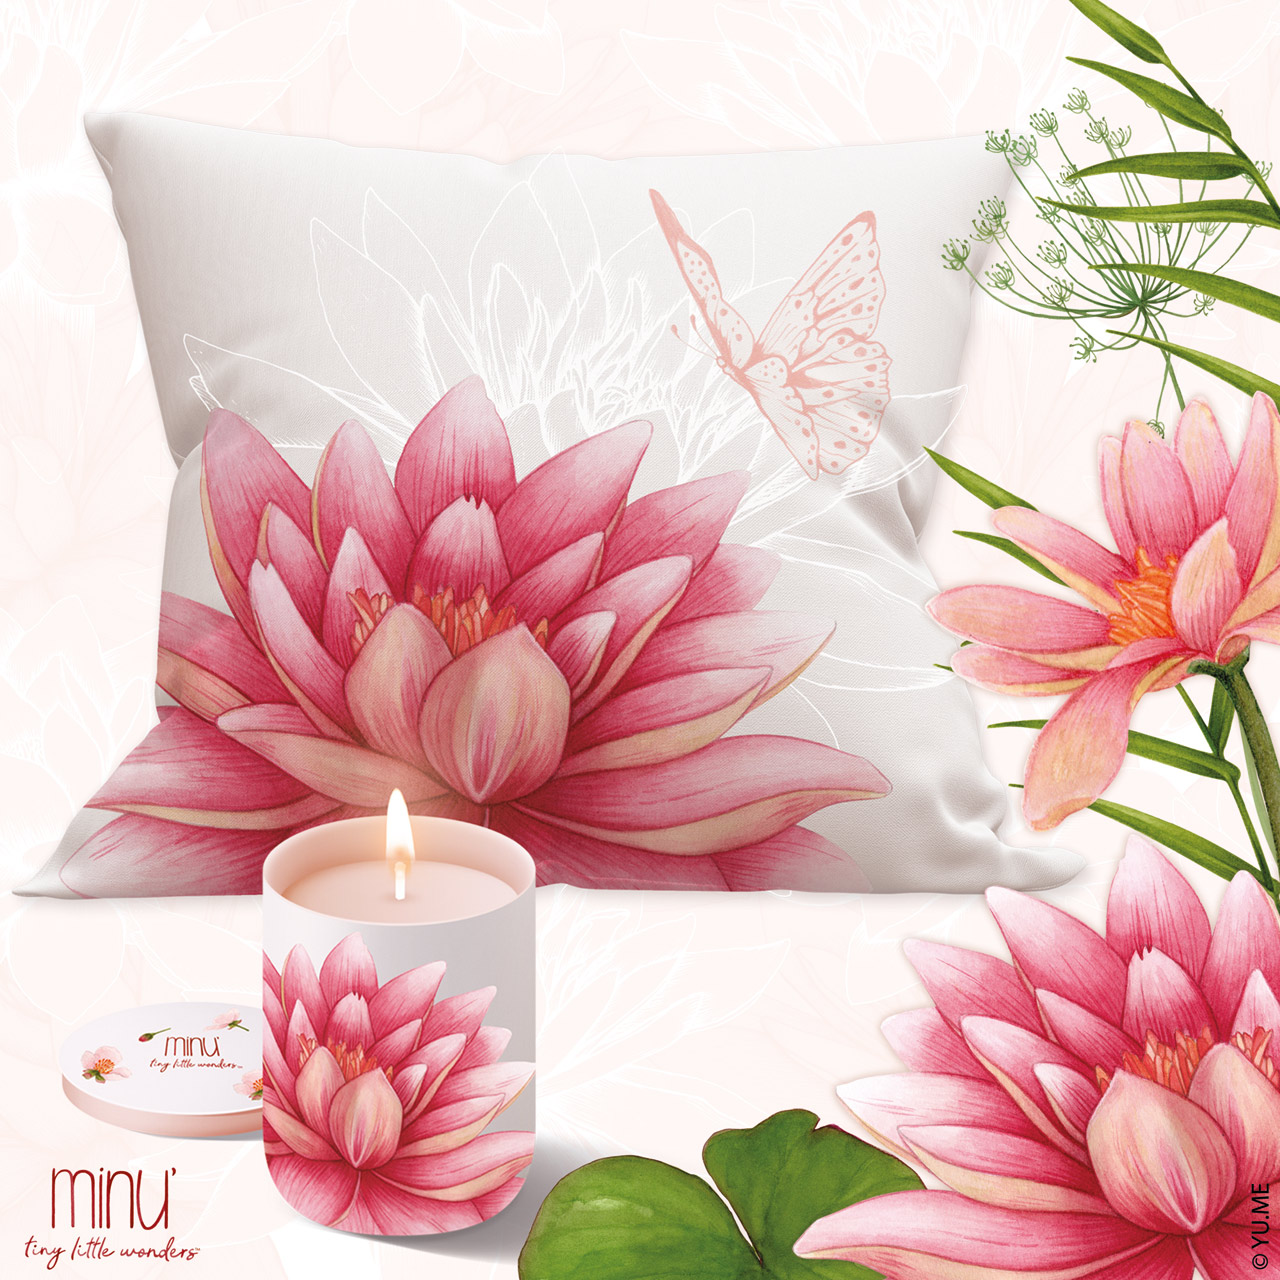 Yume nature home collection